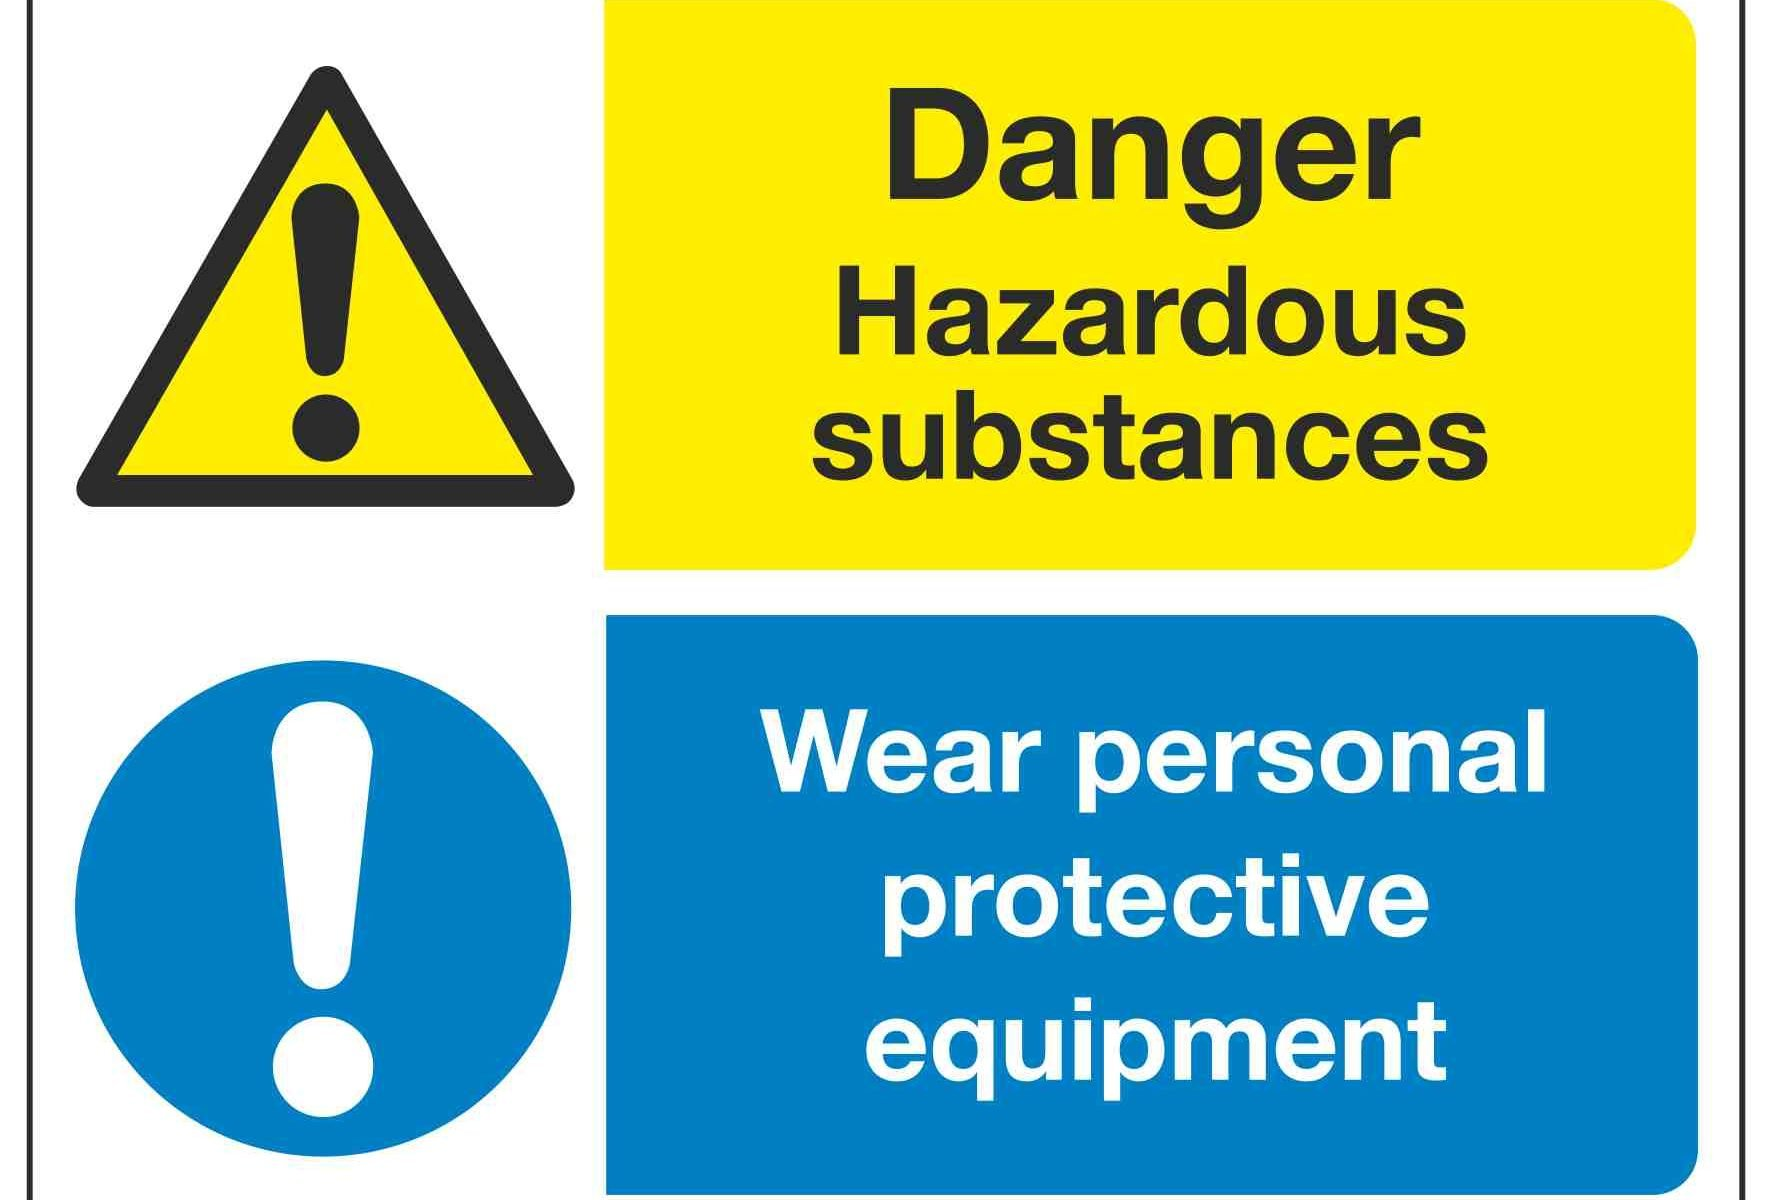 Danger Hazardous substances Wear personal protective equipment